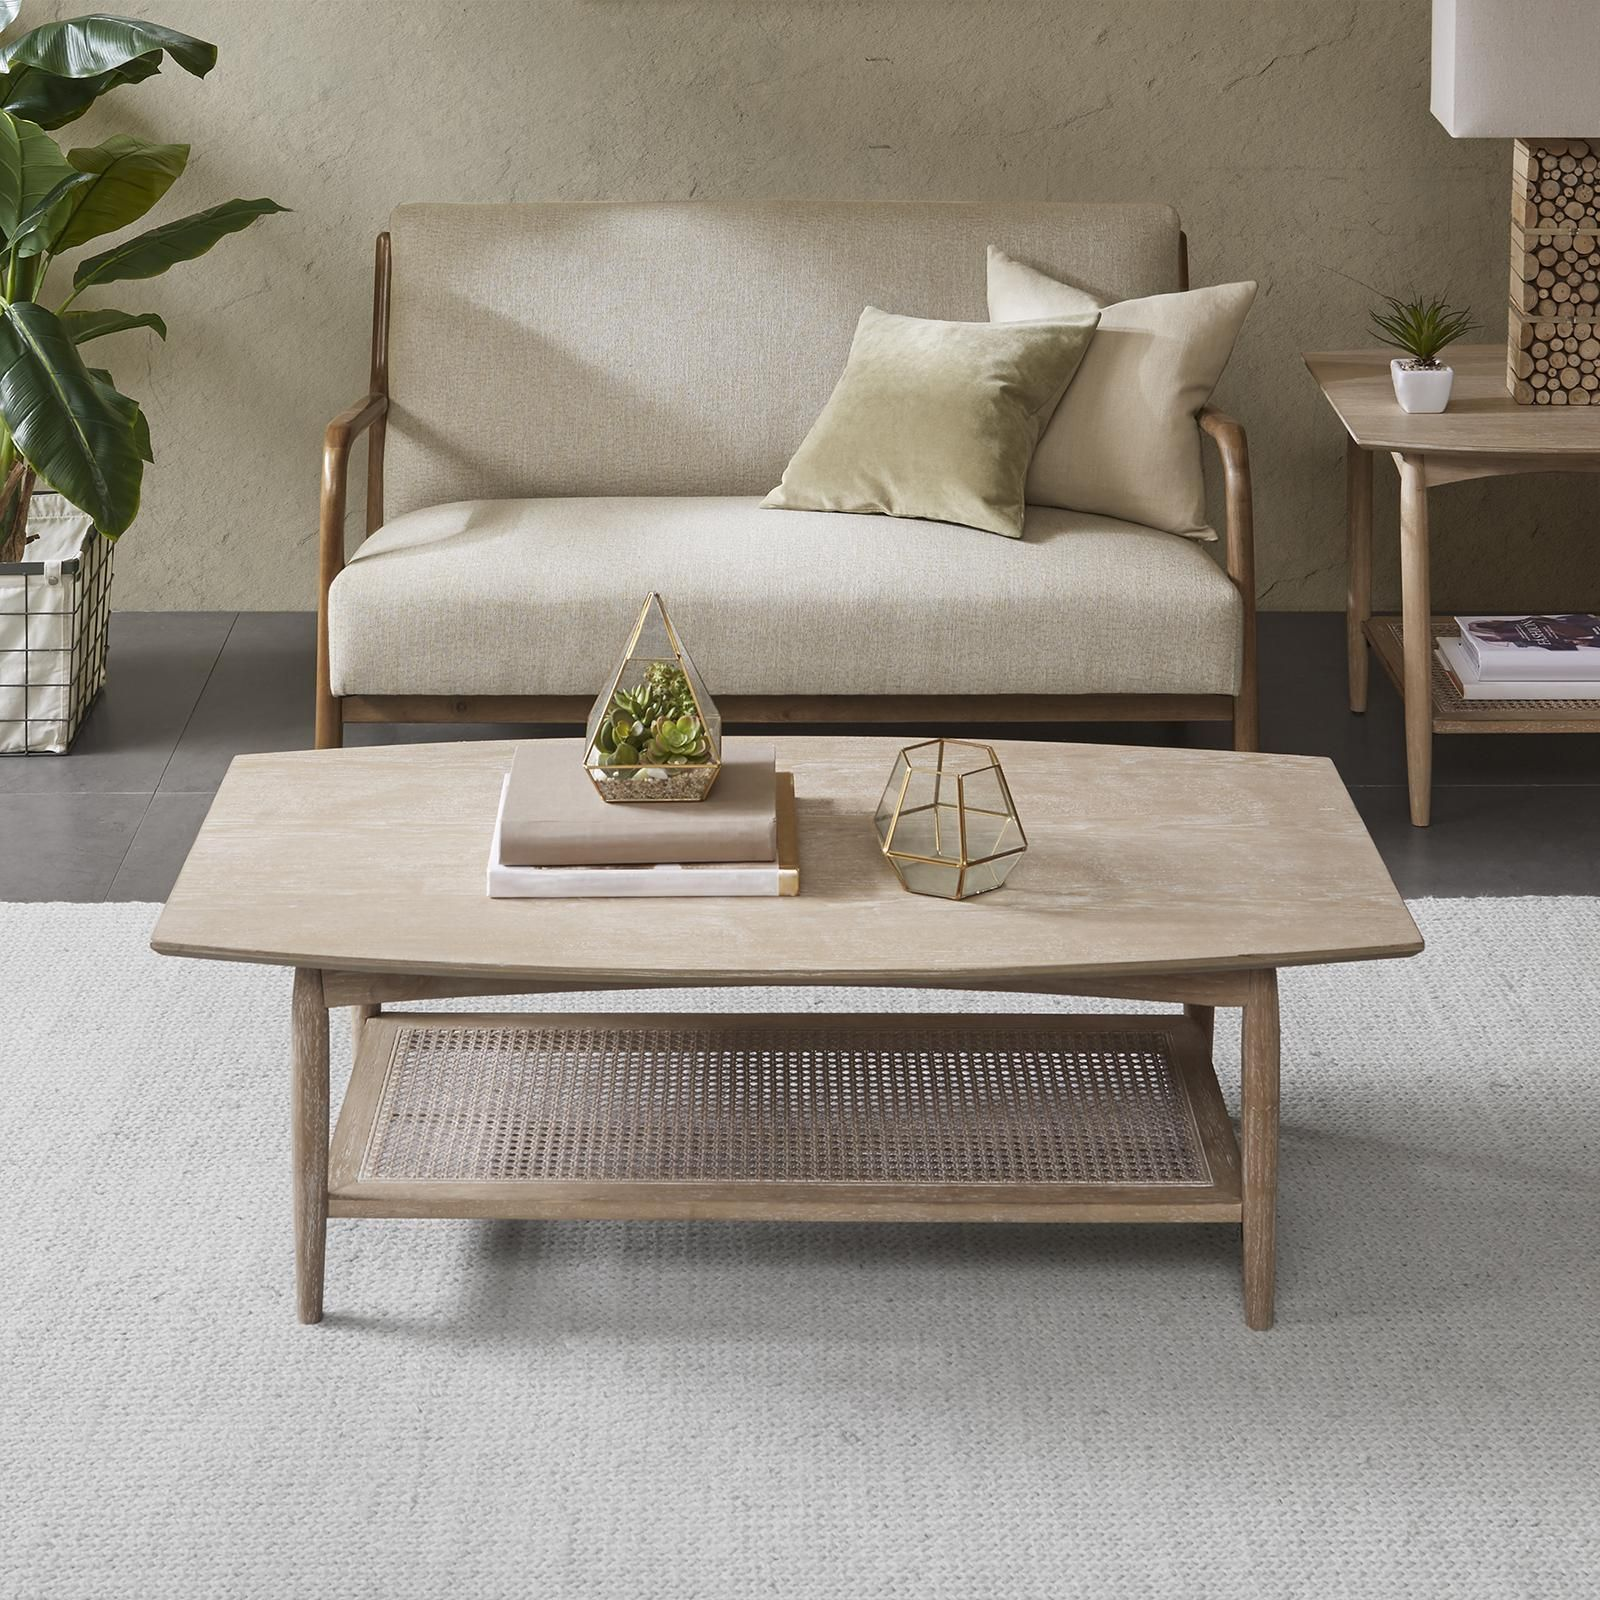 Anissa Coffee Table With Storage Coffee Table Wood Cool Coffee Tables Metal Base Coffee Table [ 800 x 1282 Pixel ]